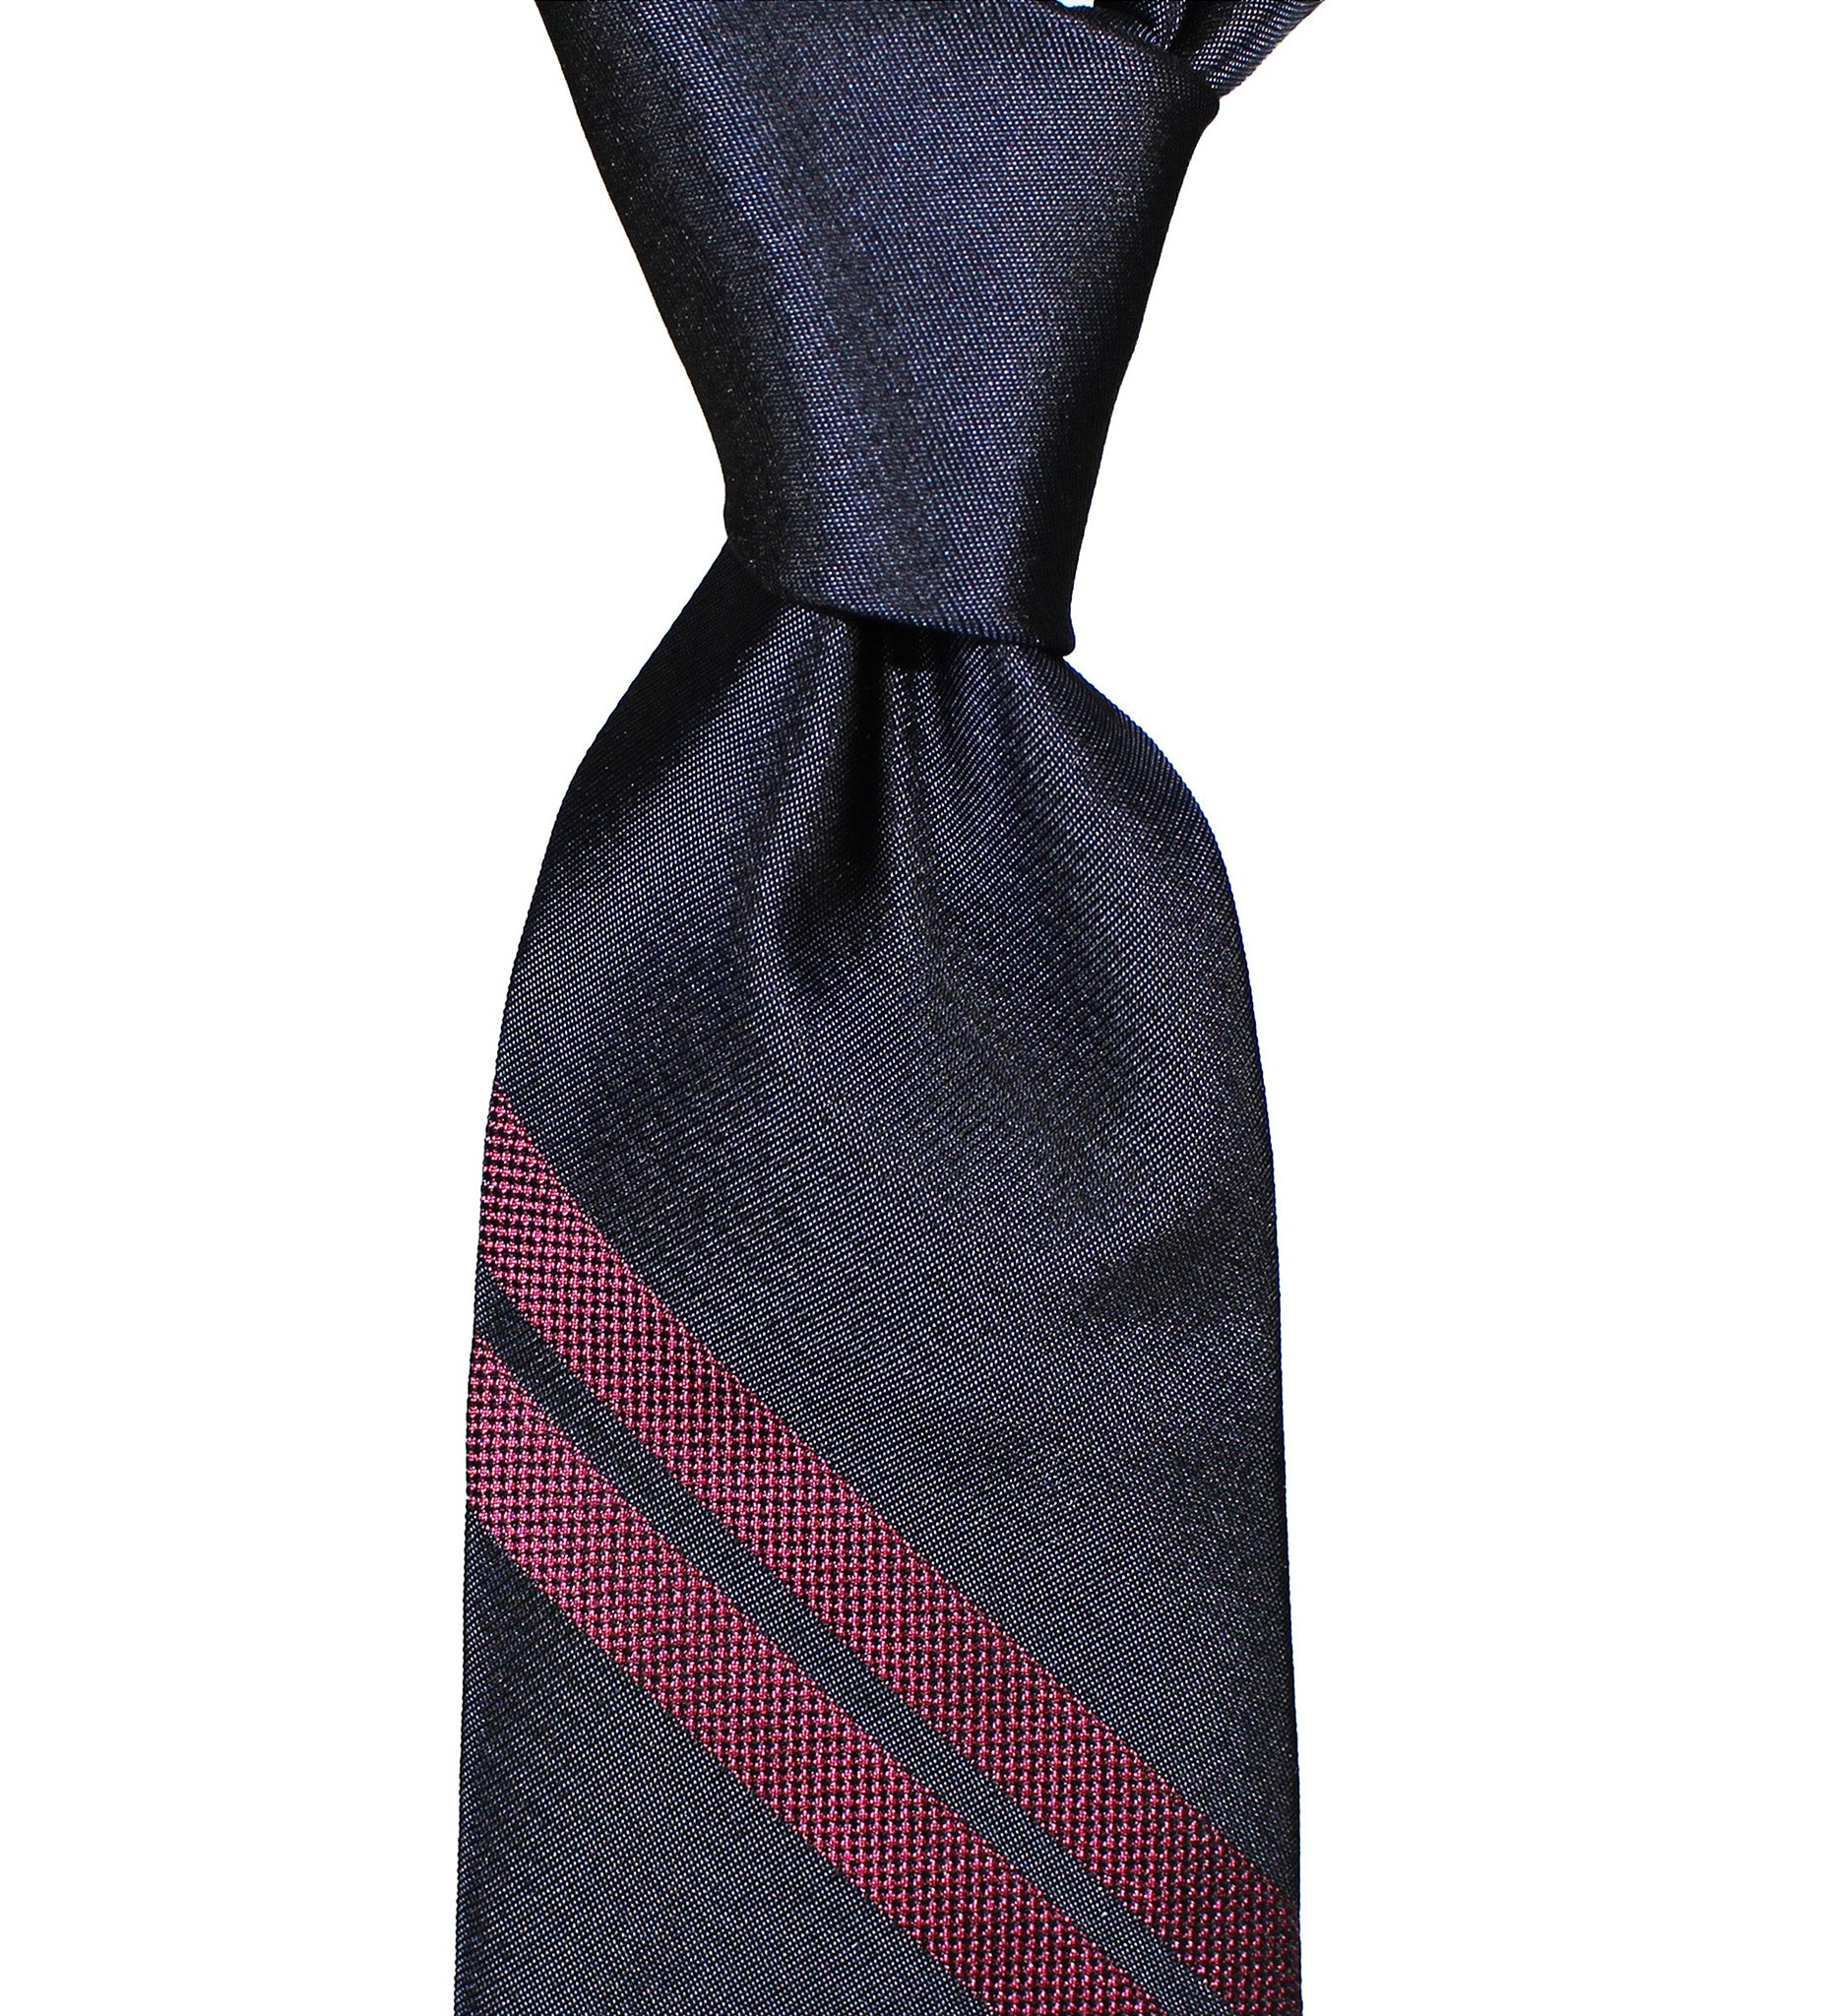 The BAR - Seven-Fold Tie